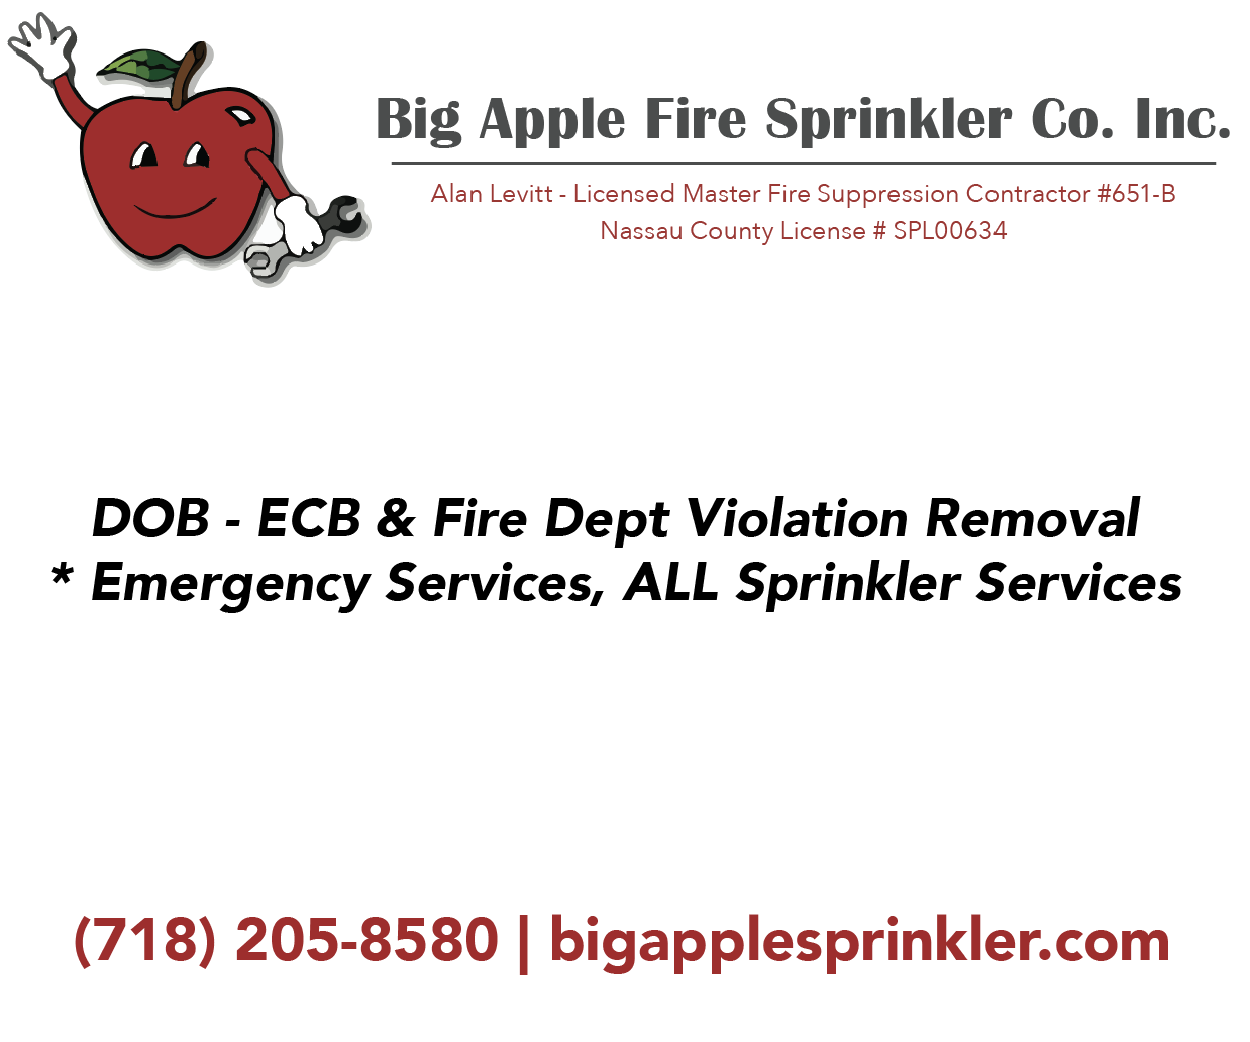 Big Apple Fire Sprinkler Company Inc.